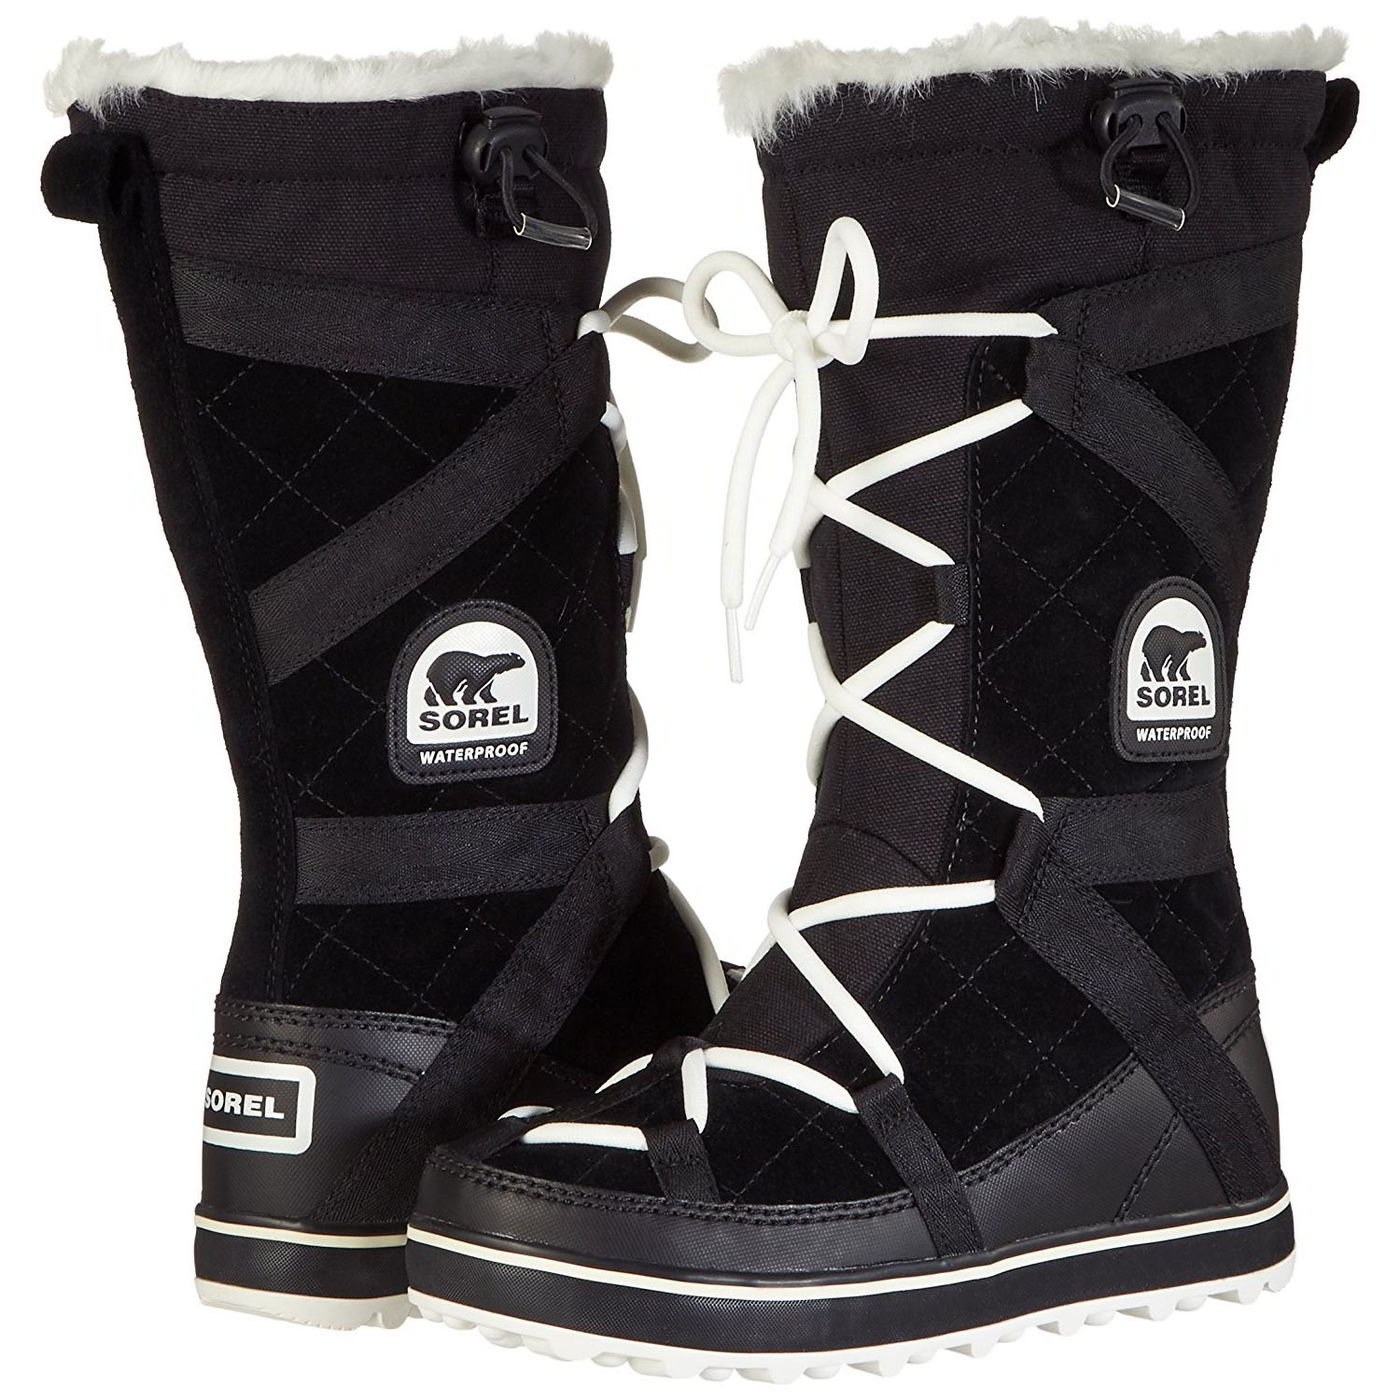 Details about Sorel Womens White Winter Snow Boots Size 6